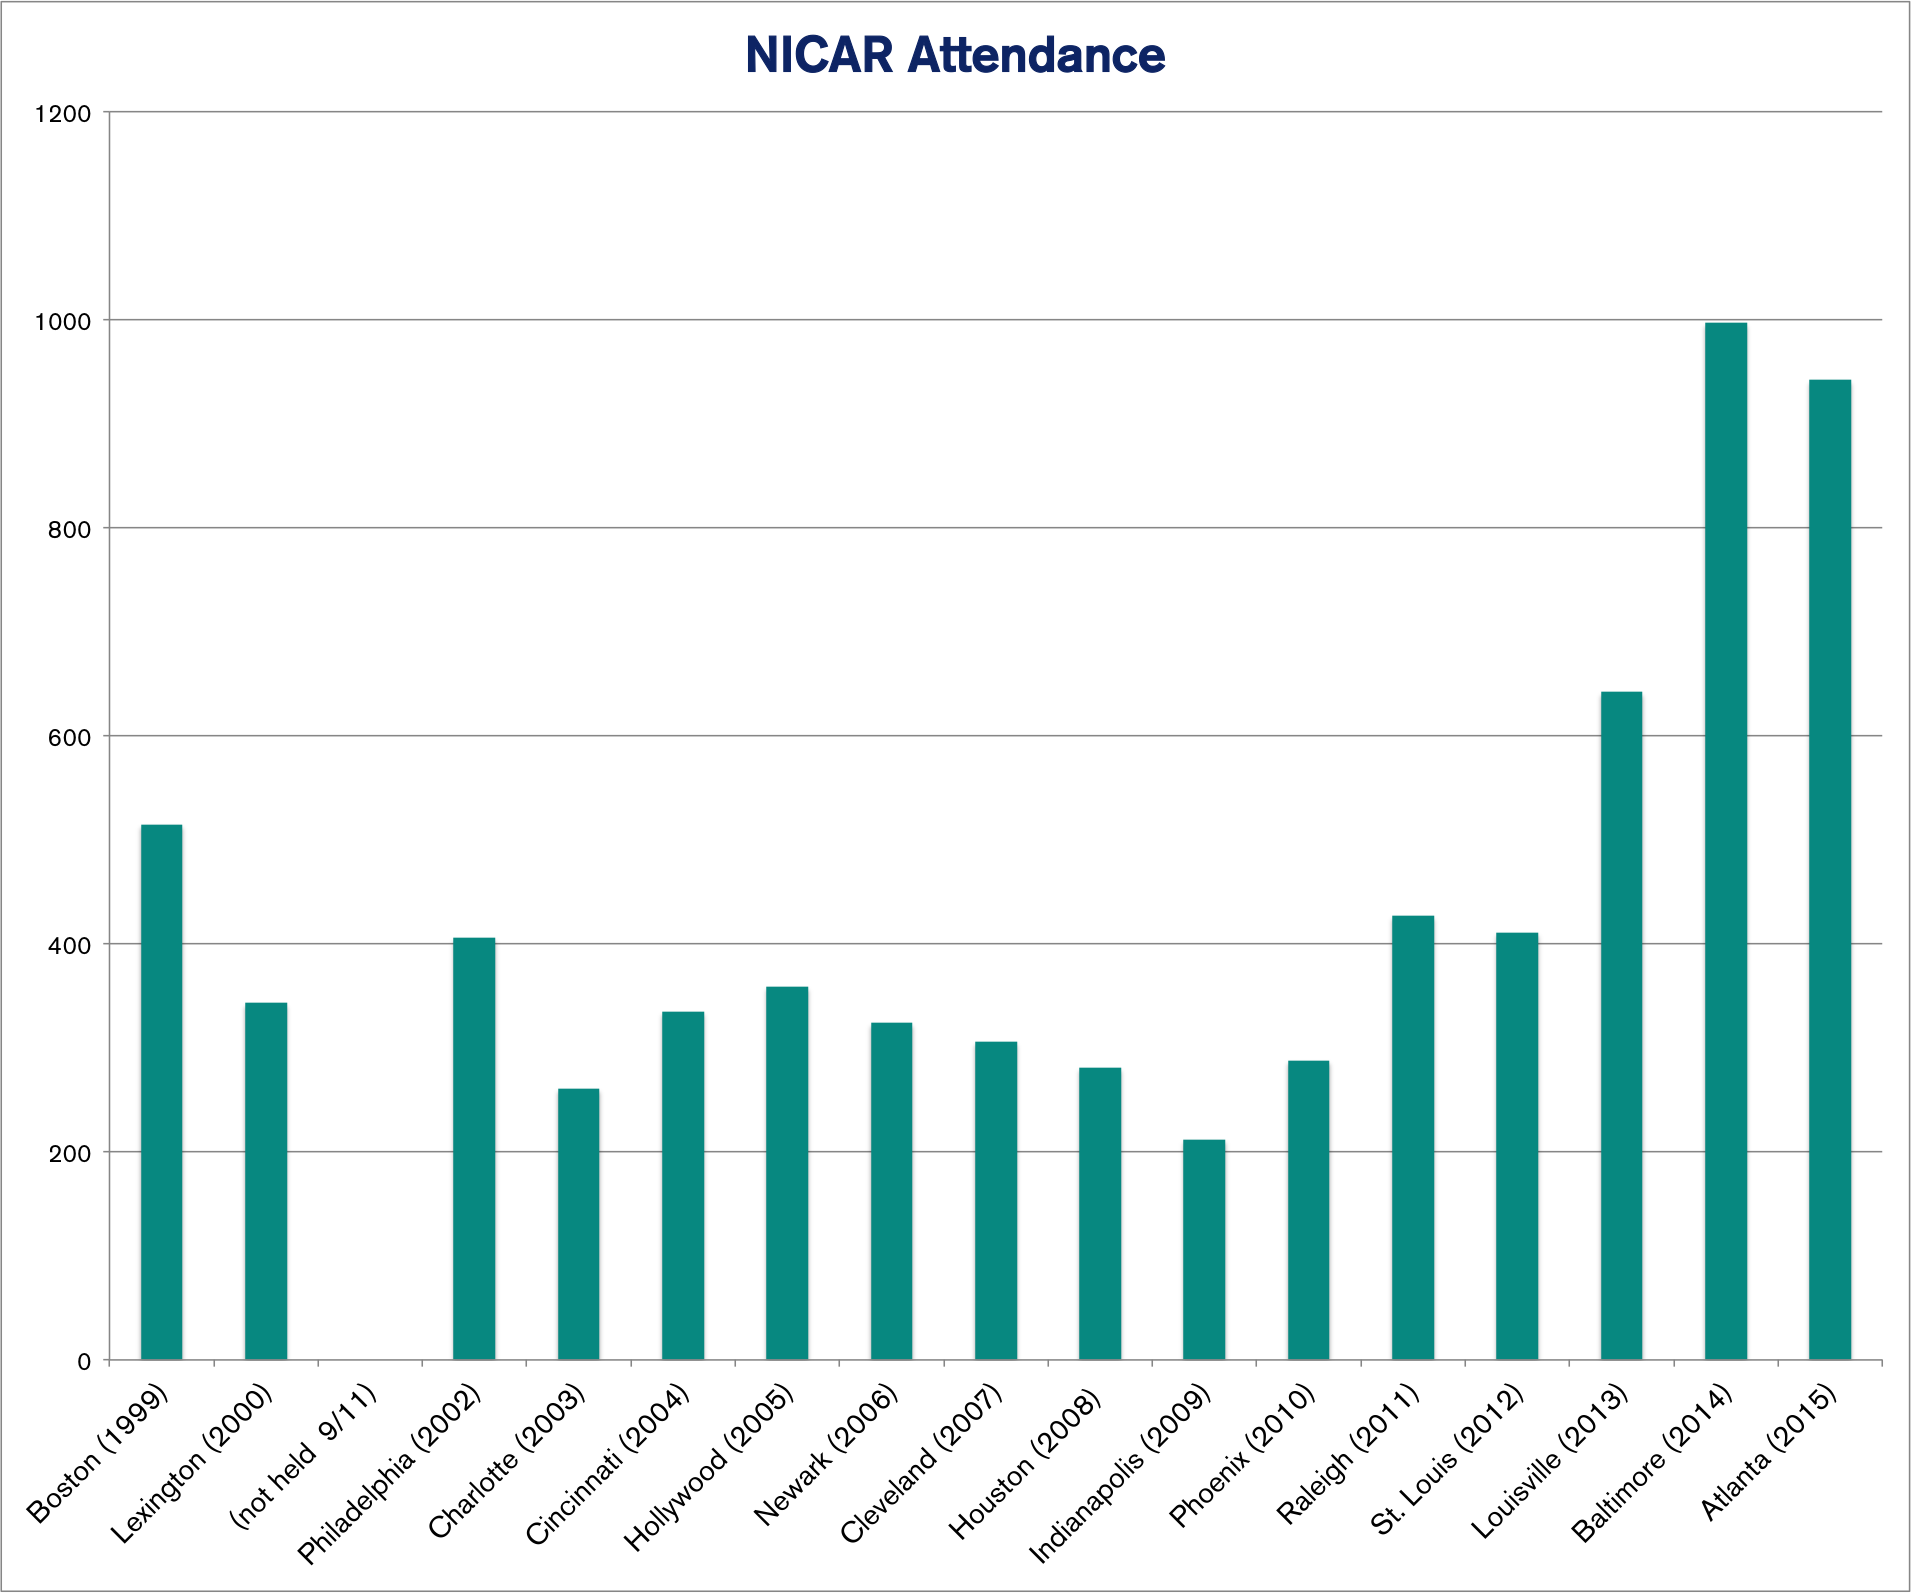 NICAR conferences over time. The conference was not held in 2001 because of 9/11. Source: IRE